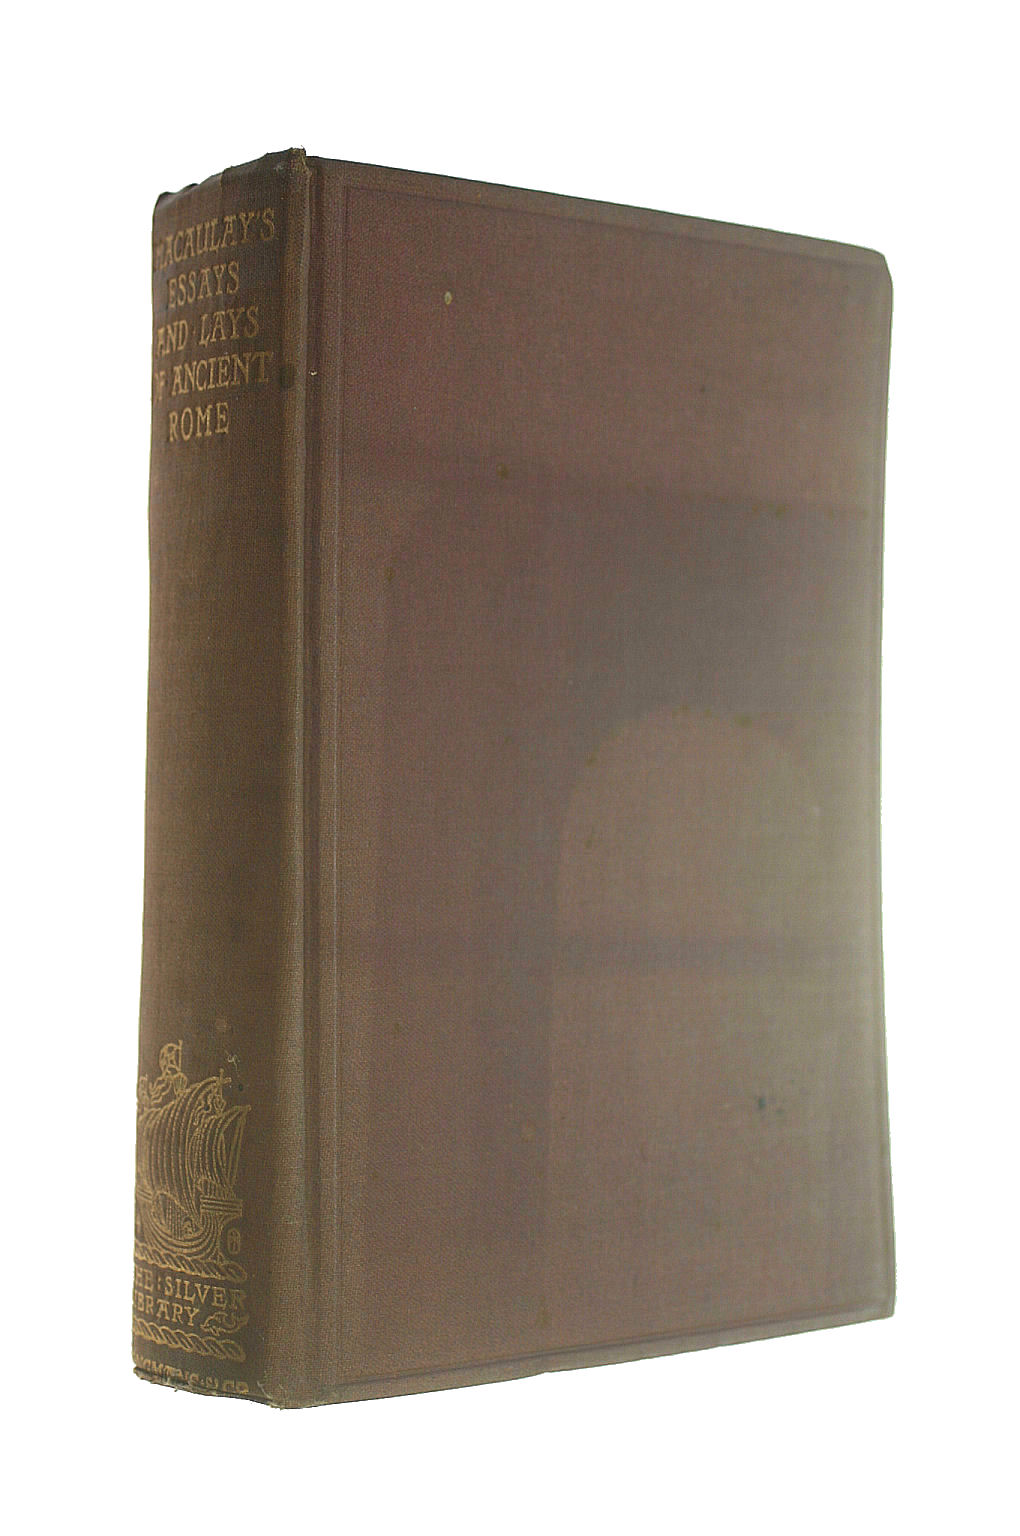 Image for LORD MACAULAY'S ESSAYS AND LAYS OF ANCIENT ROME